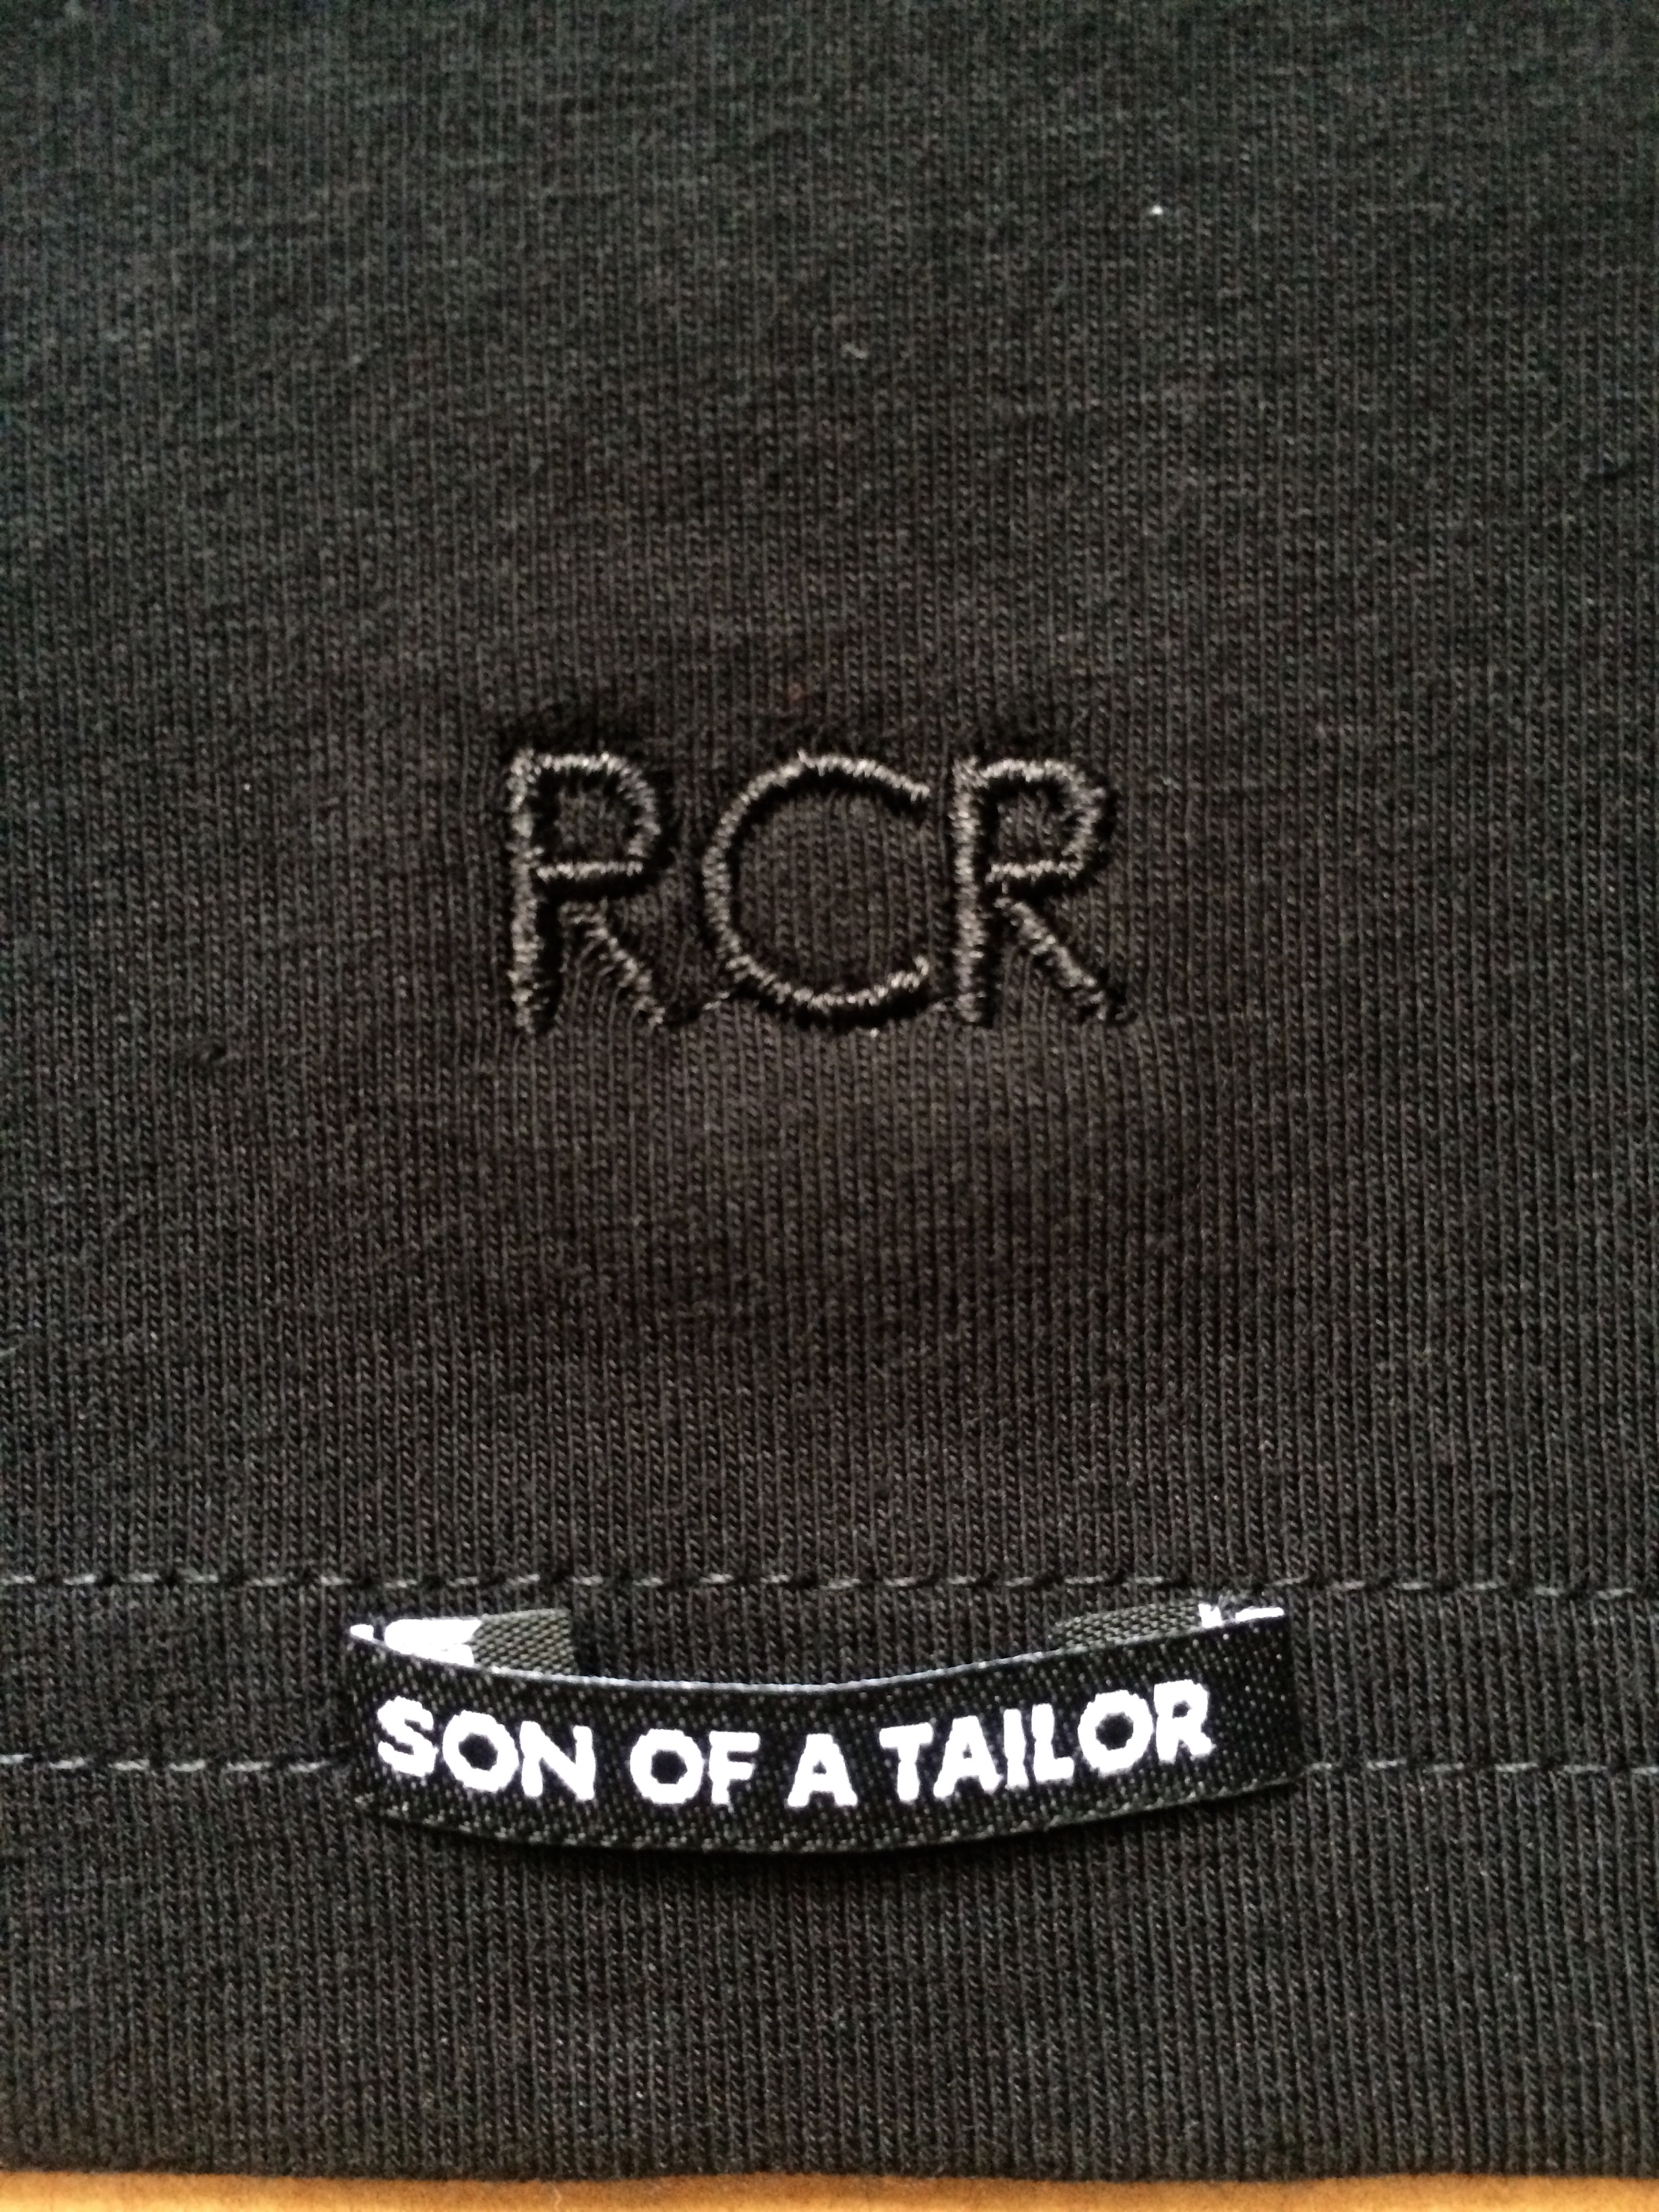 Son of a Tailor embroidery